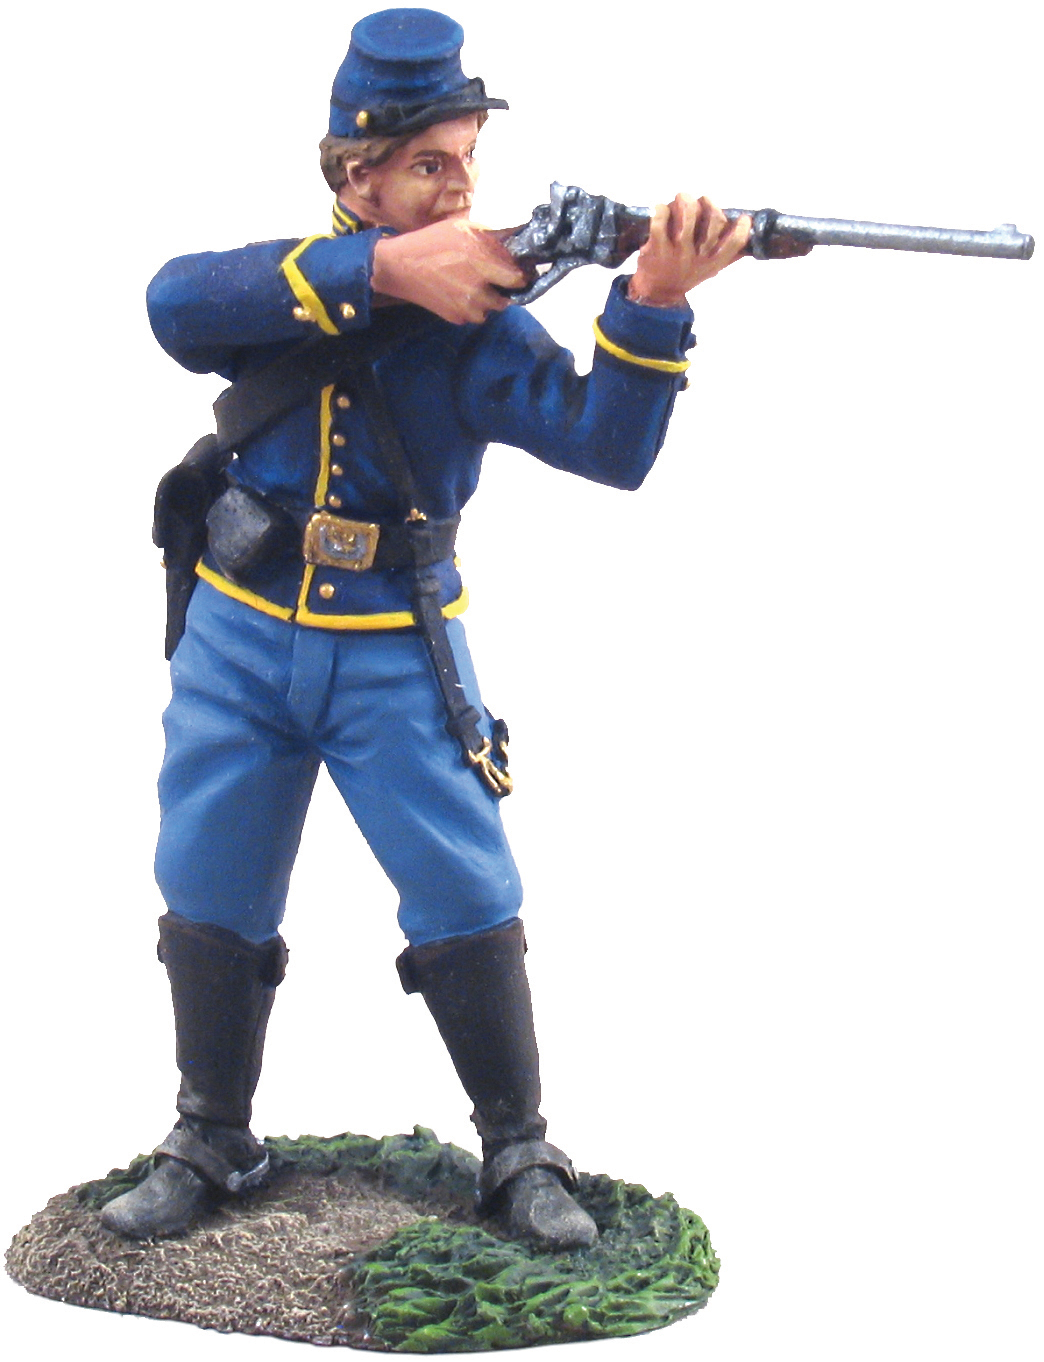 Union Cavalry Trooper Dismounted Standing Firing No. 1